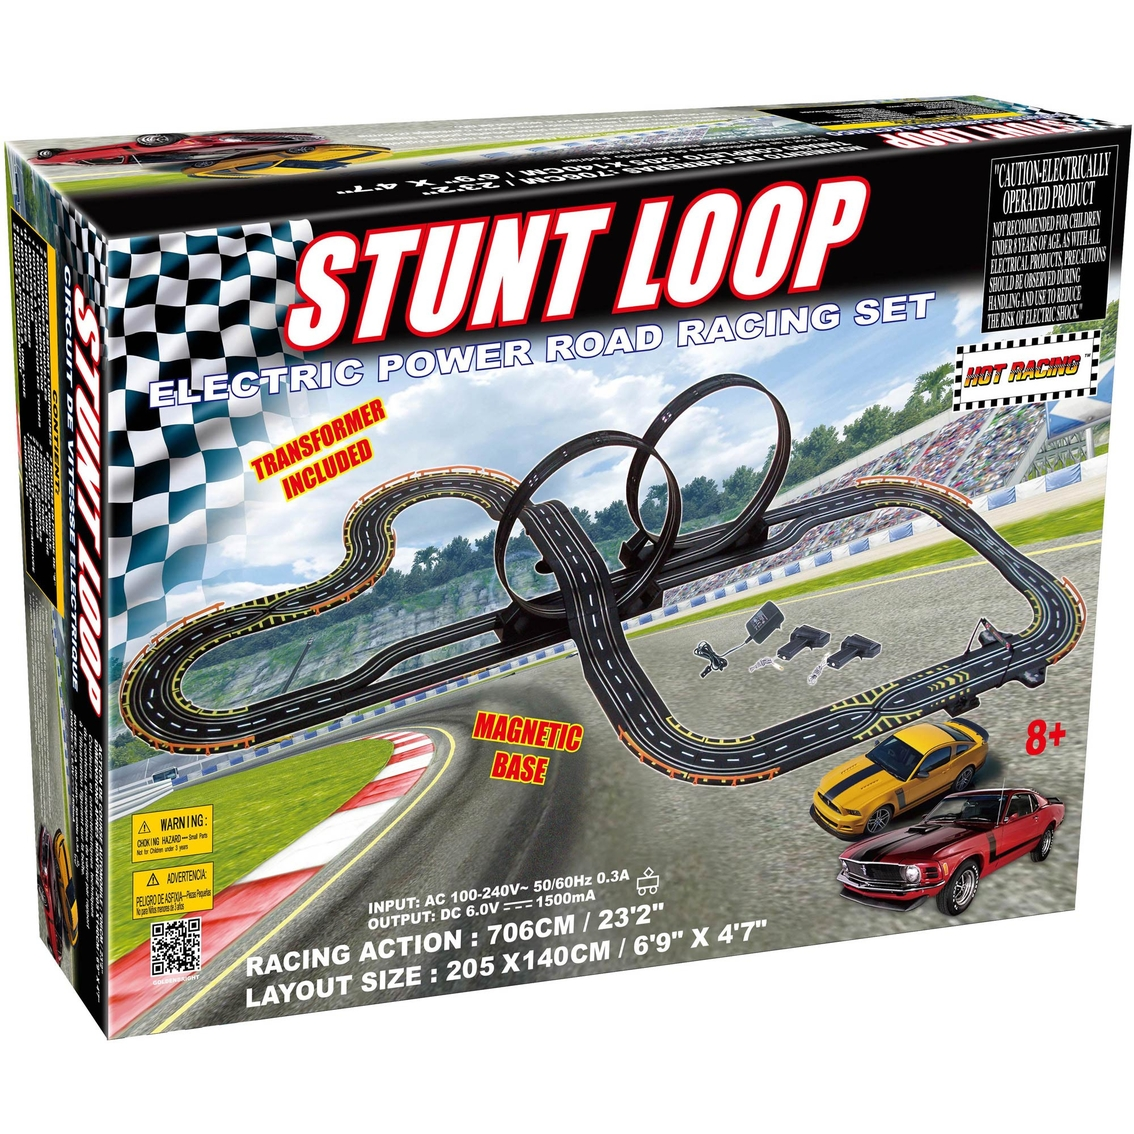 Golden Bright Electric Stunt Loop Road Racing Set